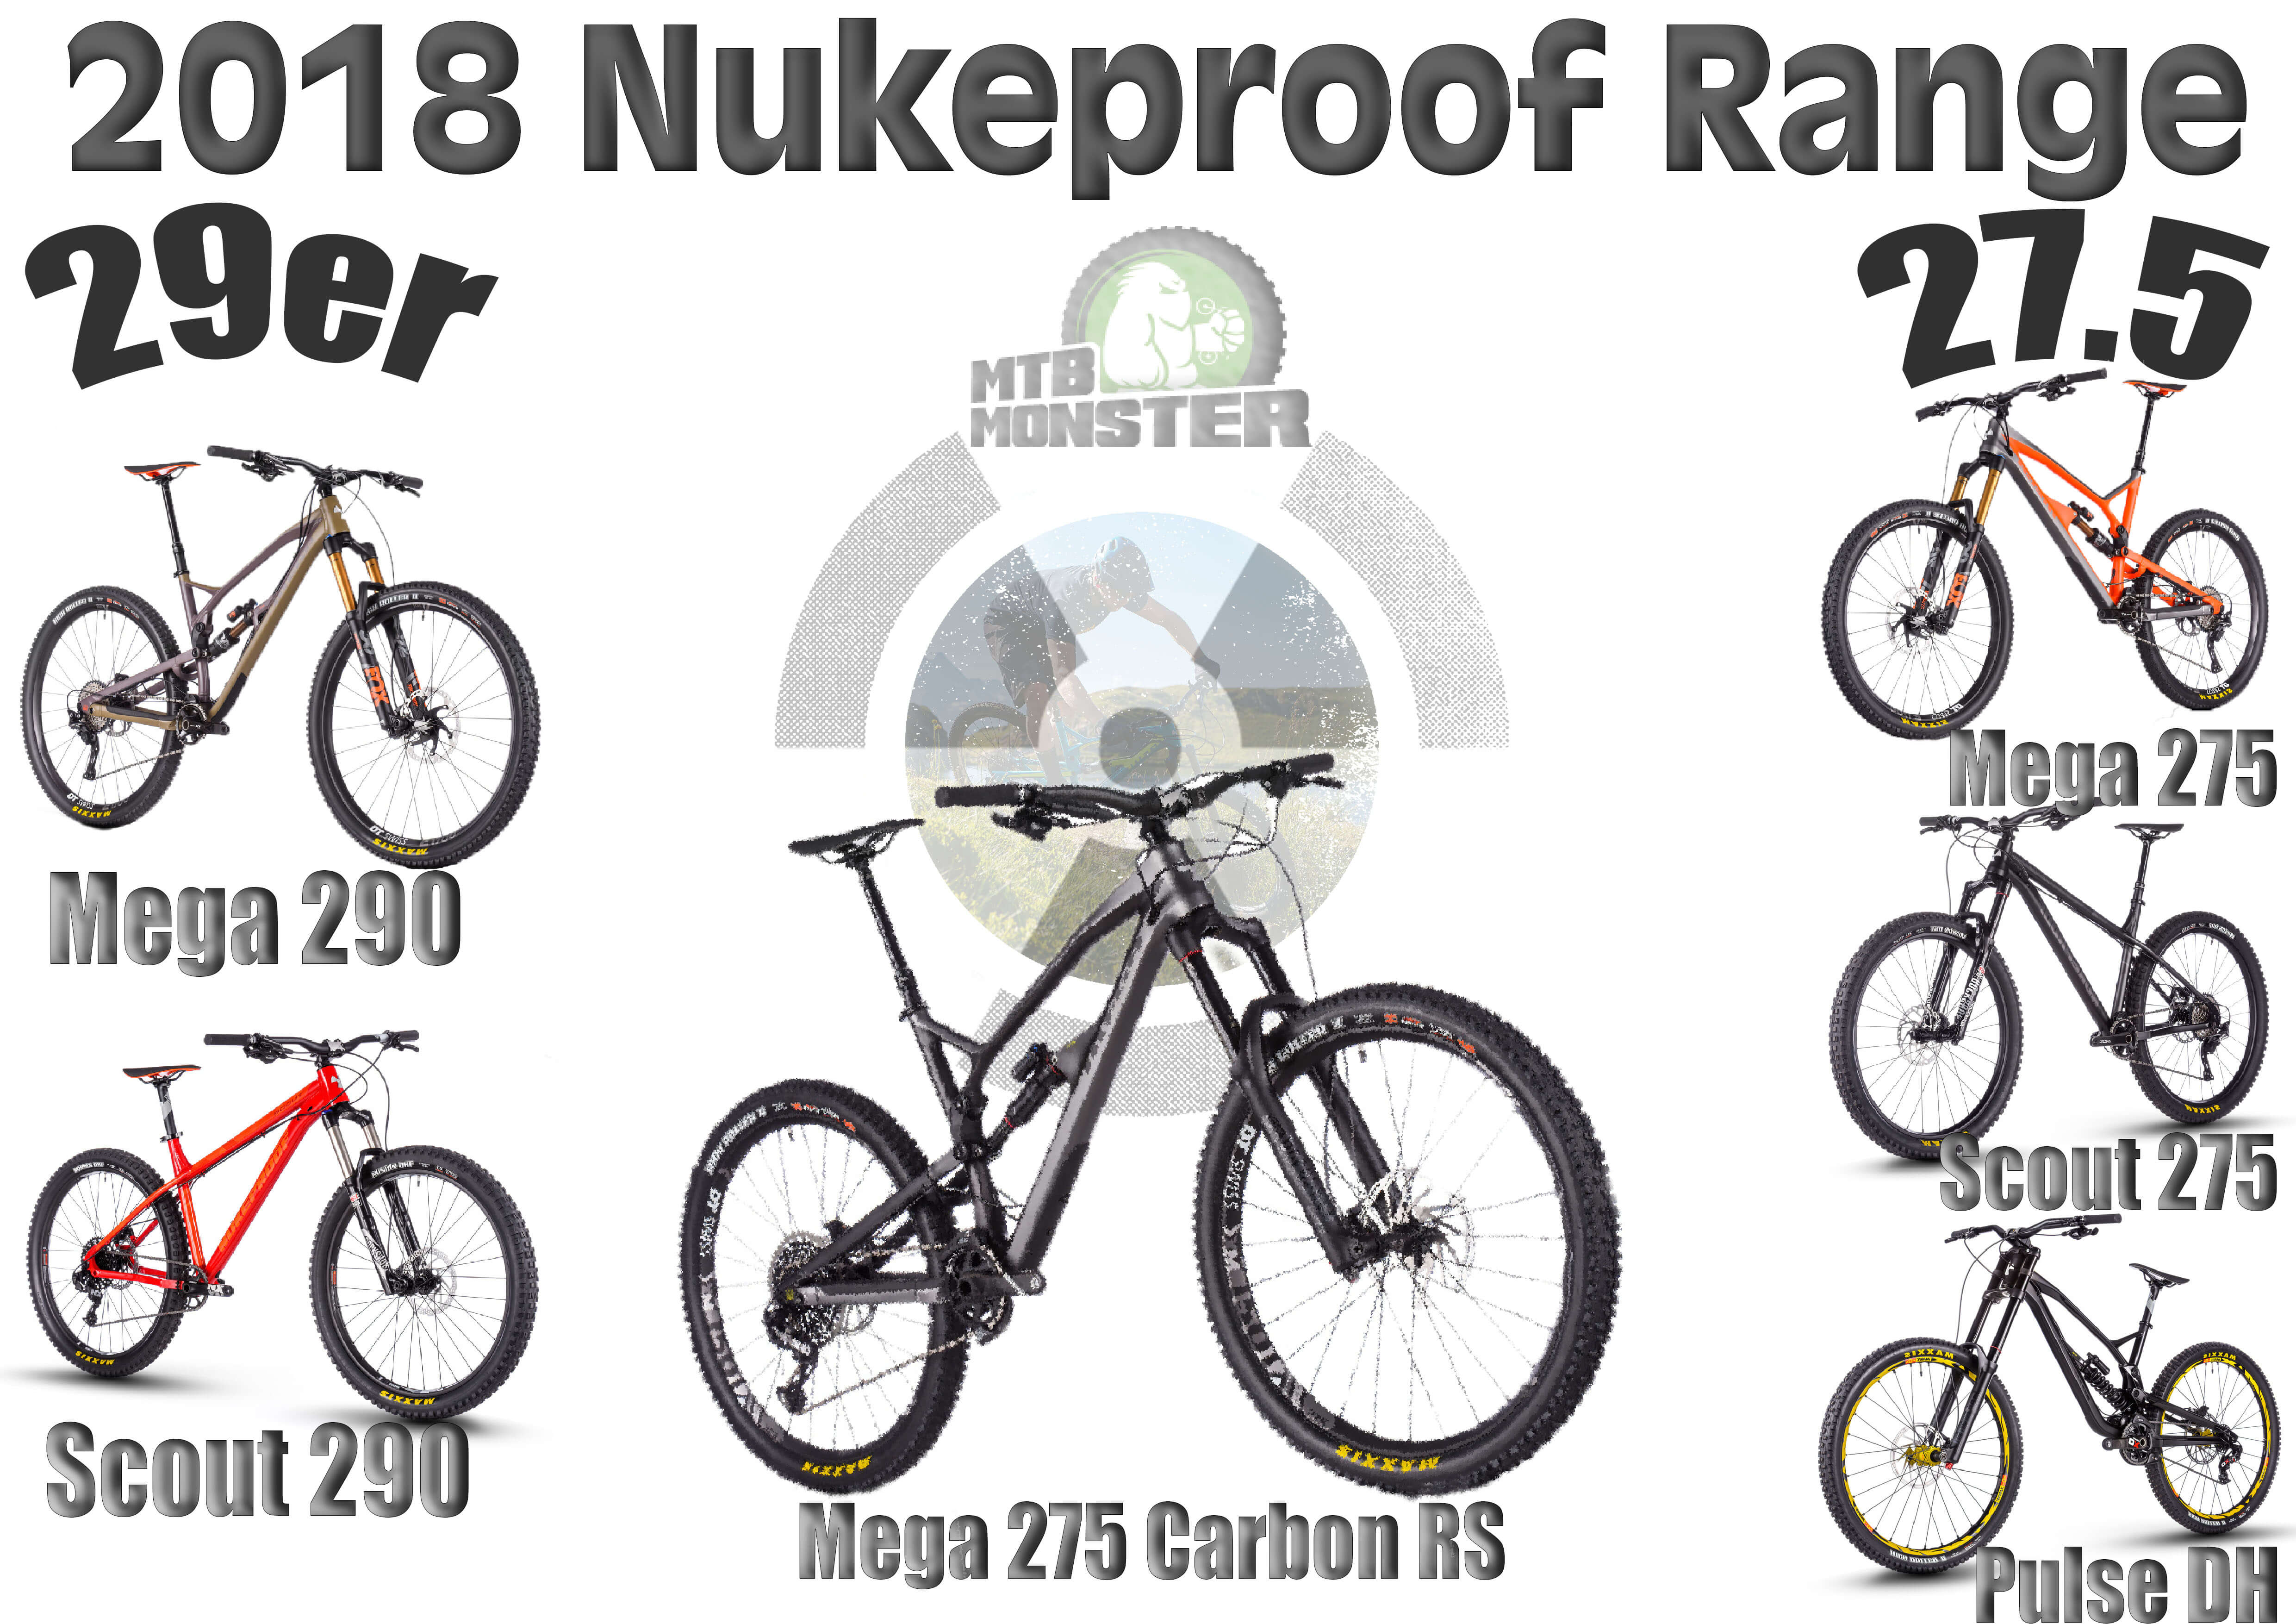 nukeproof-infomation-sheet-2018-nukeproof-bikes-range-avaliable-from-leading-uk-dealer-mtb-monster-with-36-months-finance-and-free-uk-delivery-buy-now-2018.jpg